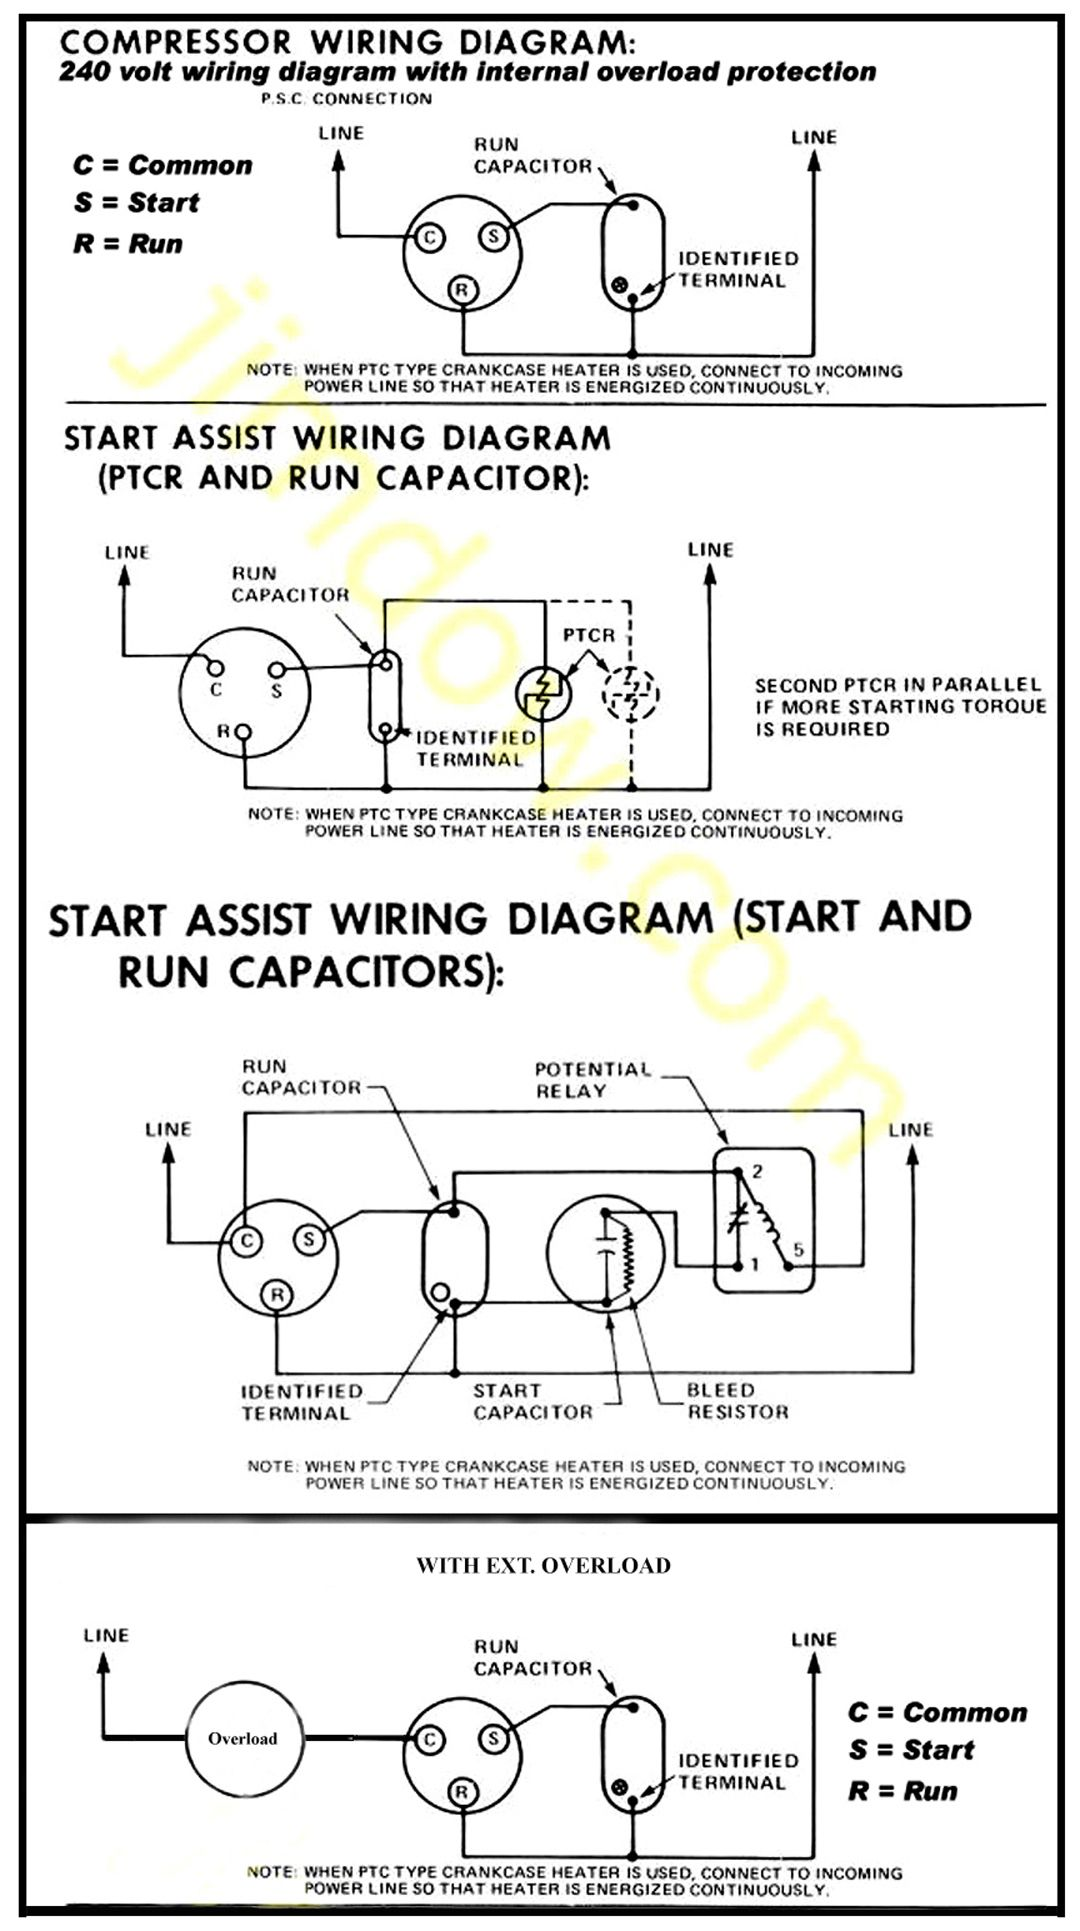 Wiring Diagram For 220 Volt Air Compressor - bookingritzcarlton.info |  Refrigeration and air conditioning, Hvac air conditioning, Air conditioner  compressor | Hvac Blower Wiring Diagrams 220v |  | Pinterest